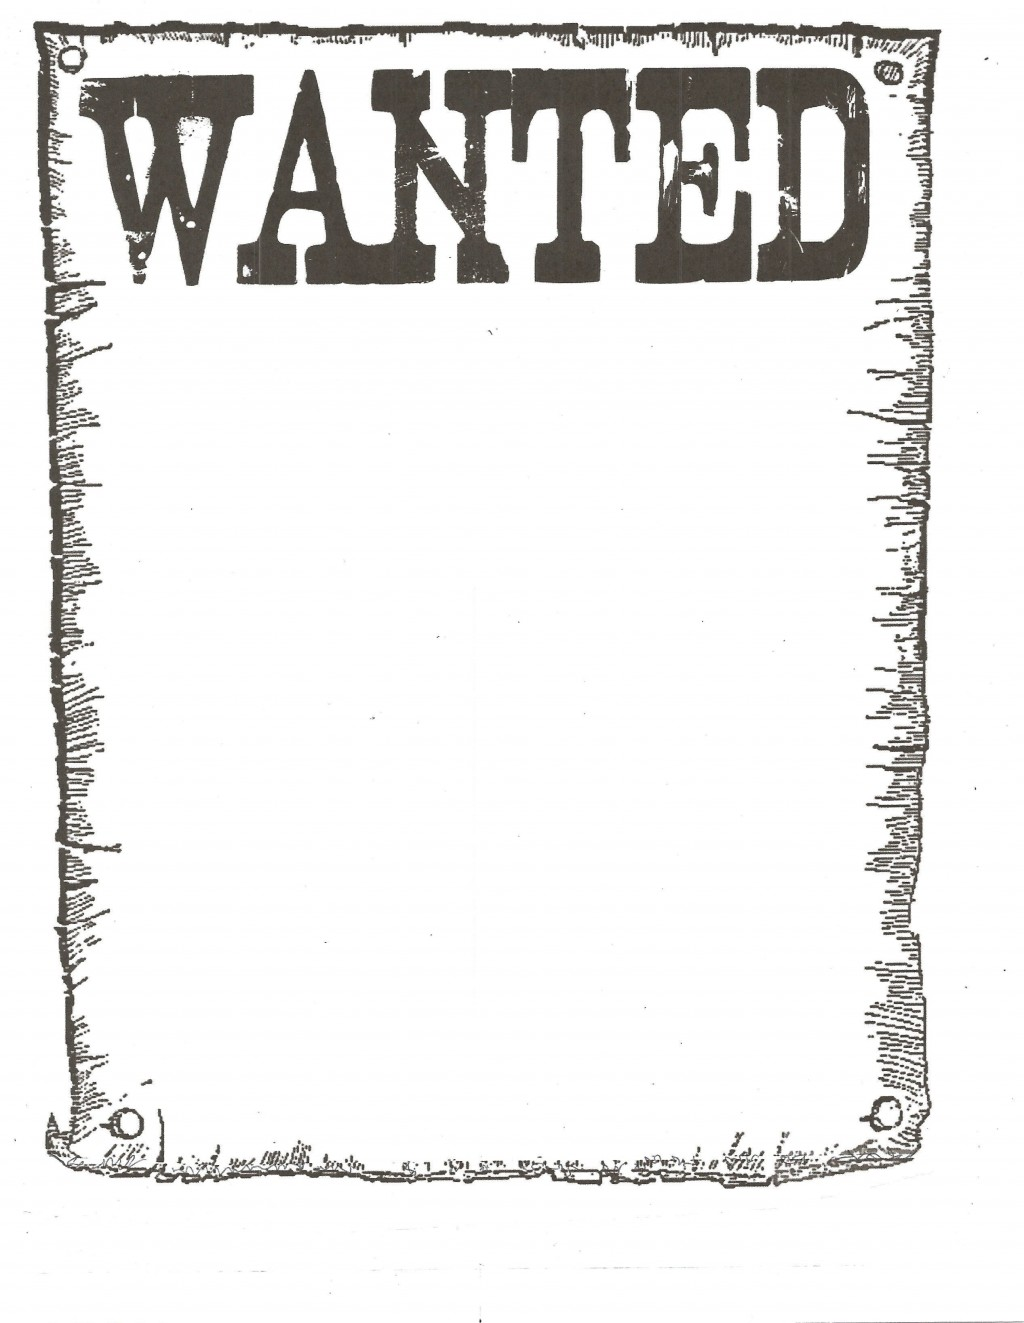 005 Impressive Wanted Poster Template Free Printable Design  MostLarge